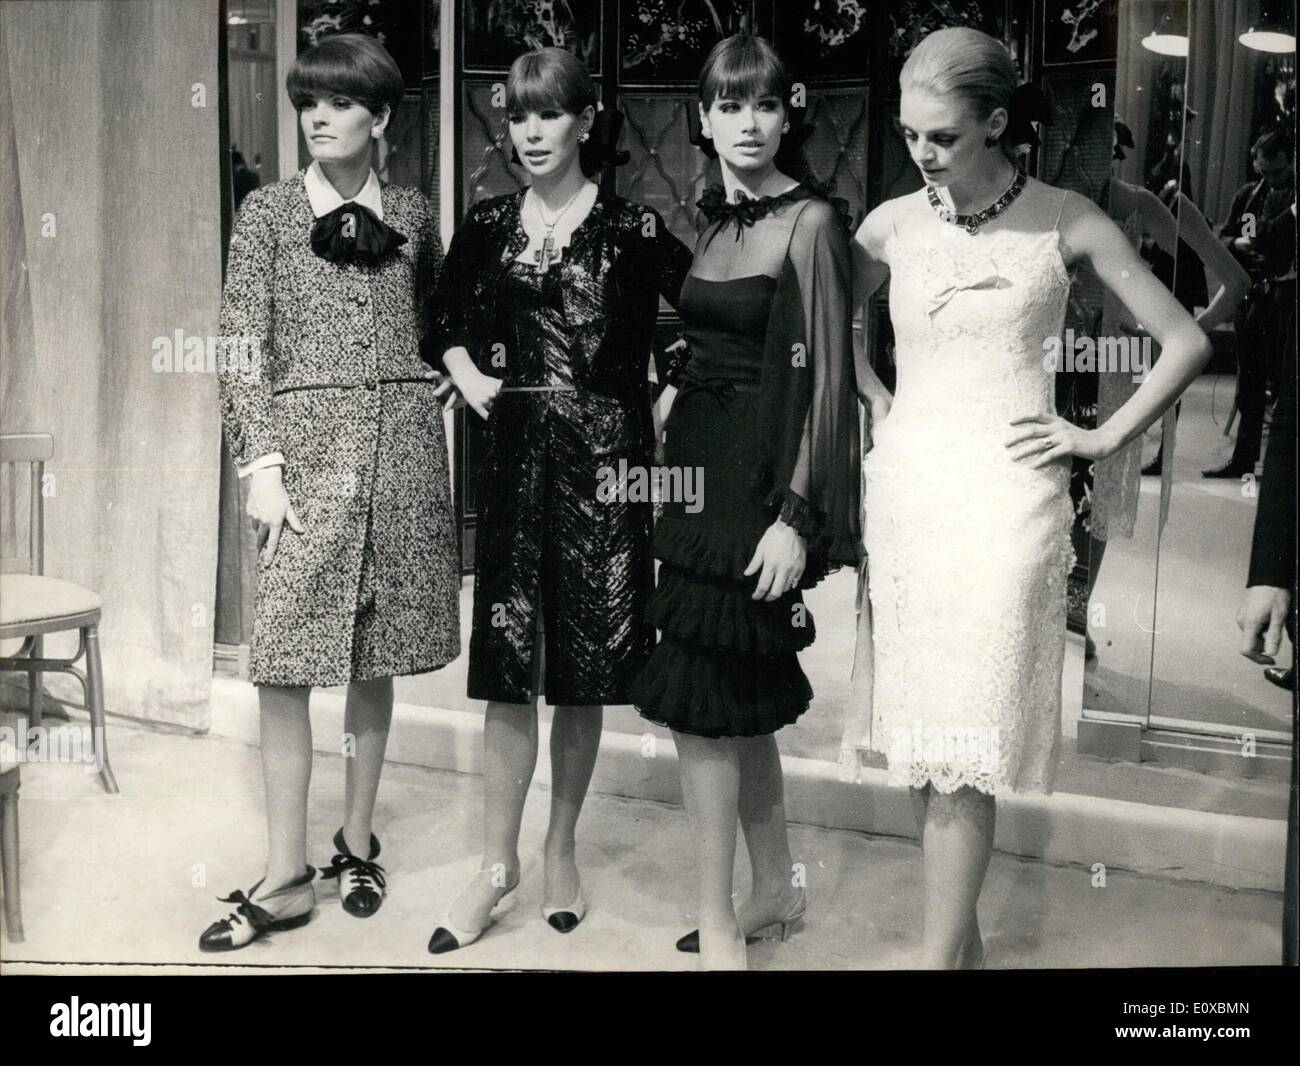 feb 02 1966 fashion show at coco chanel 39 s photo shows stock photo 69421429 alamy. Black Bedroom Furniture Sets. Home Design Ideas